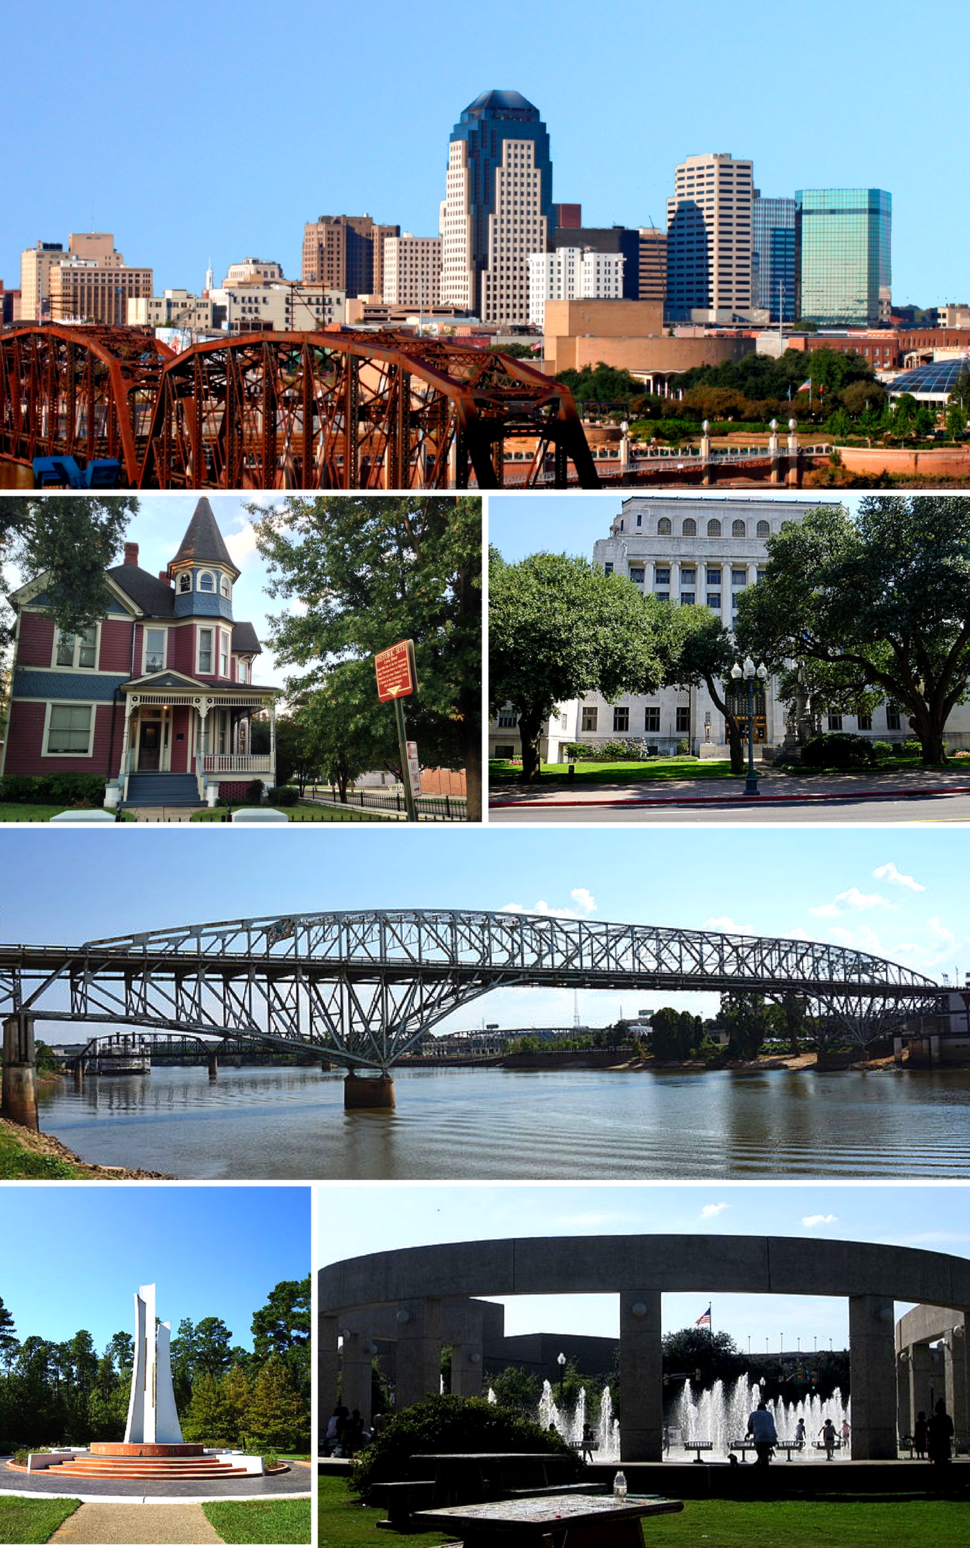 From top, left to right: Downtown Shreveport skyline, the Lewis House, Caddo Parish Courthouse, Long-Allen Bridge, Gardens of the American Rose Center monument, Shreveport Riverfront Fountain